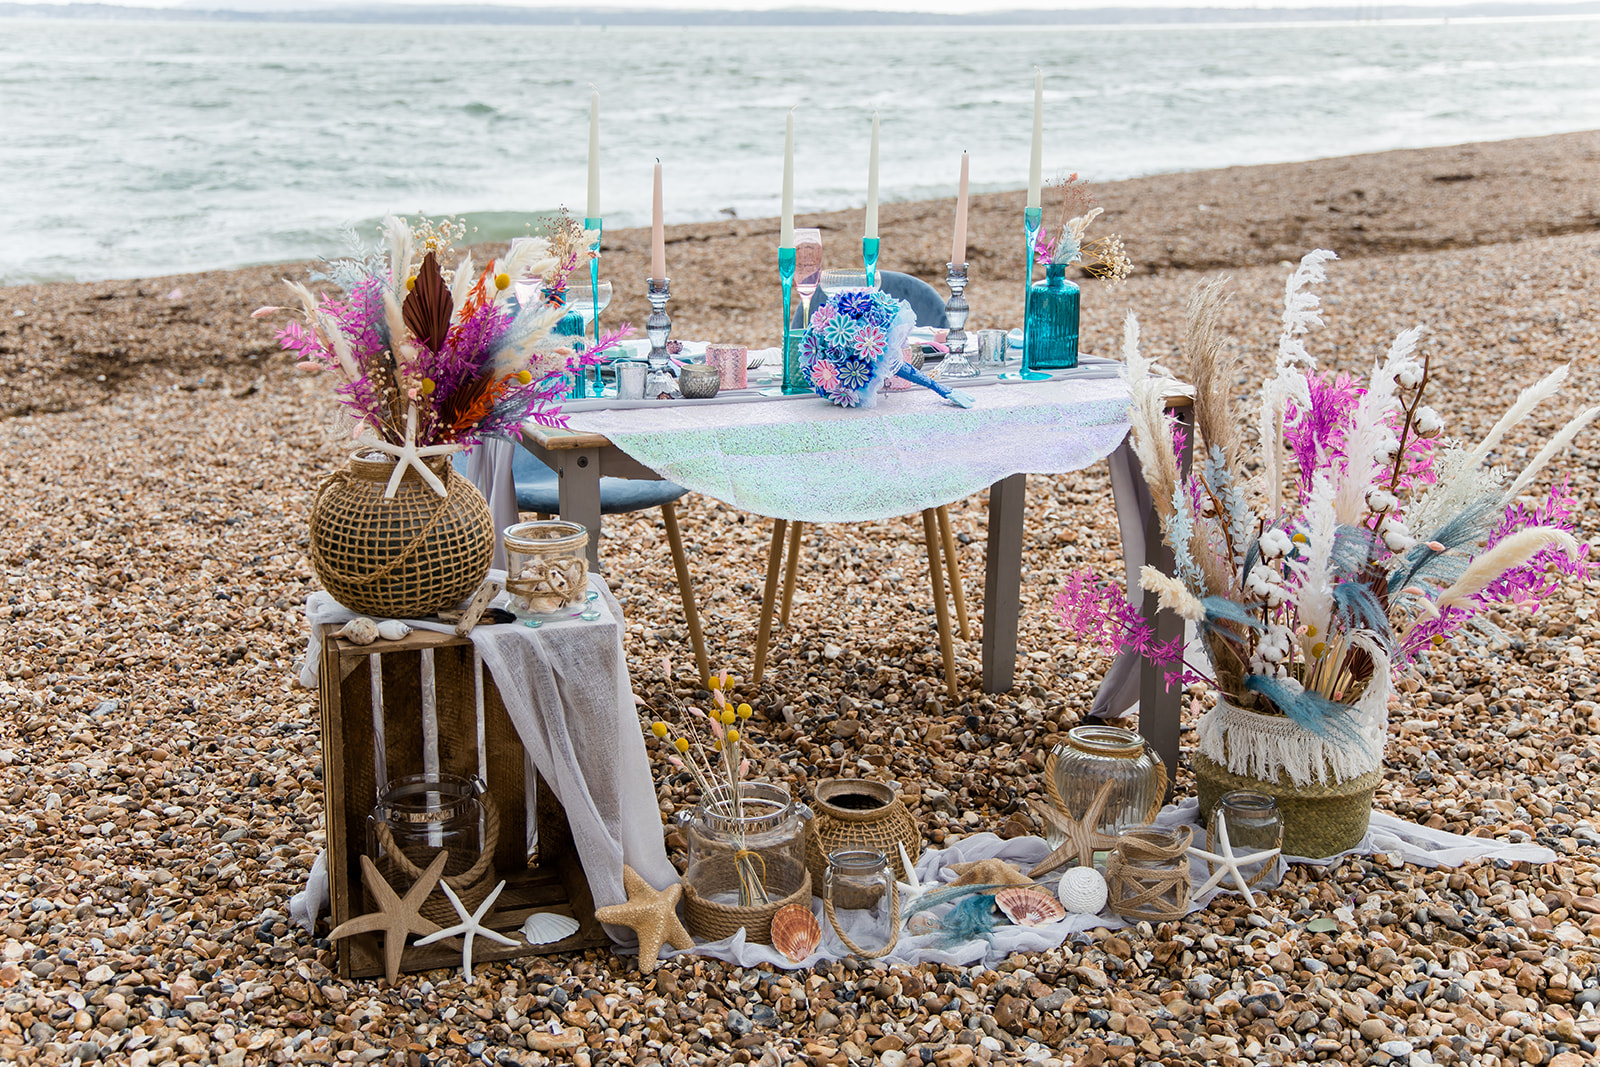 mermaid wedding - beach wedding - quirky wedding - unique wedding - alternative seaside wedding - alternative wedding